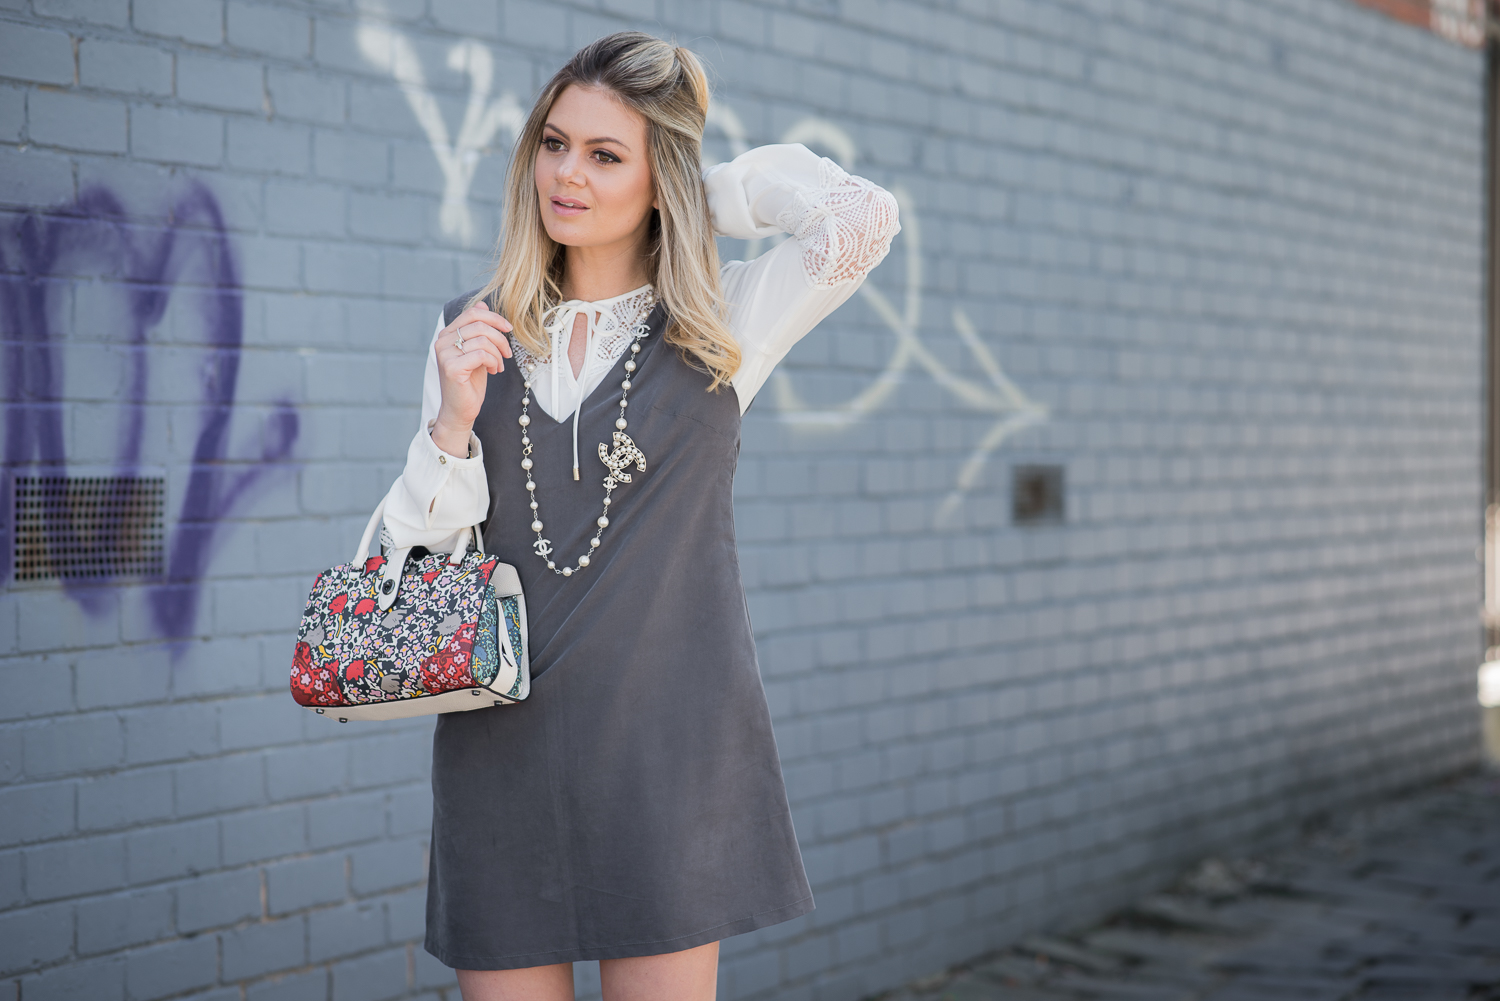 melbourne-street-style-wwkd_0040